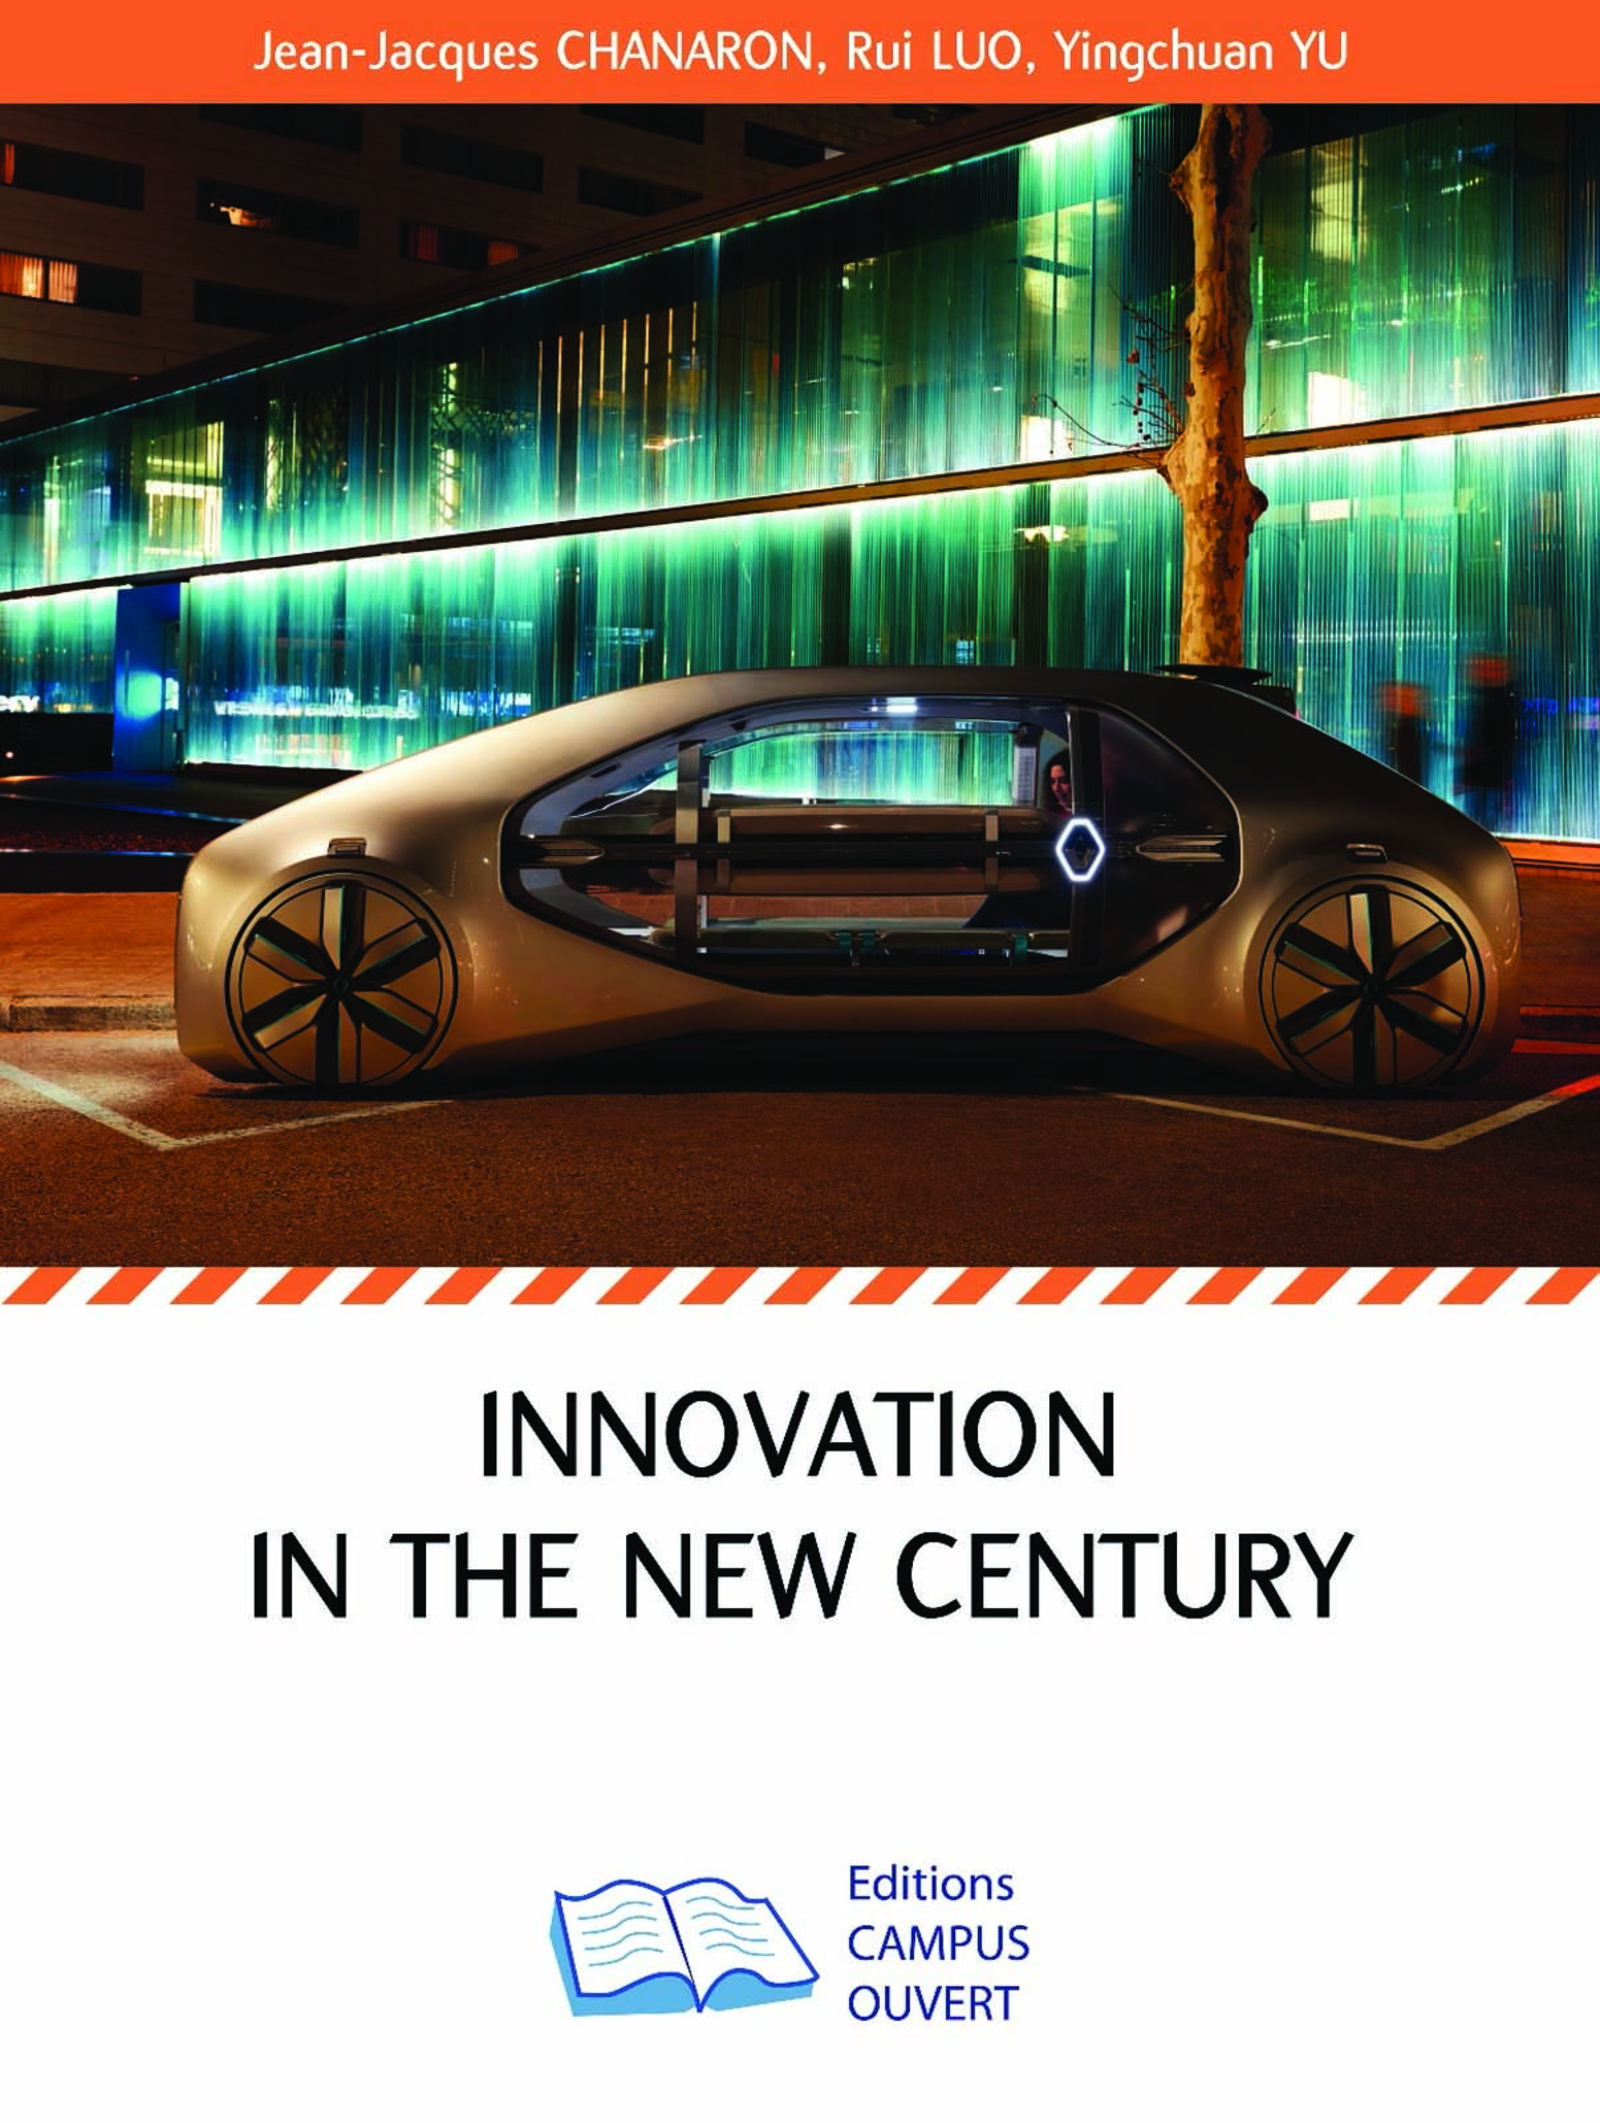 Innovation in the